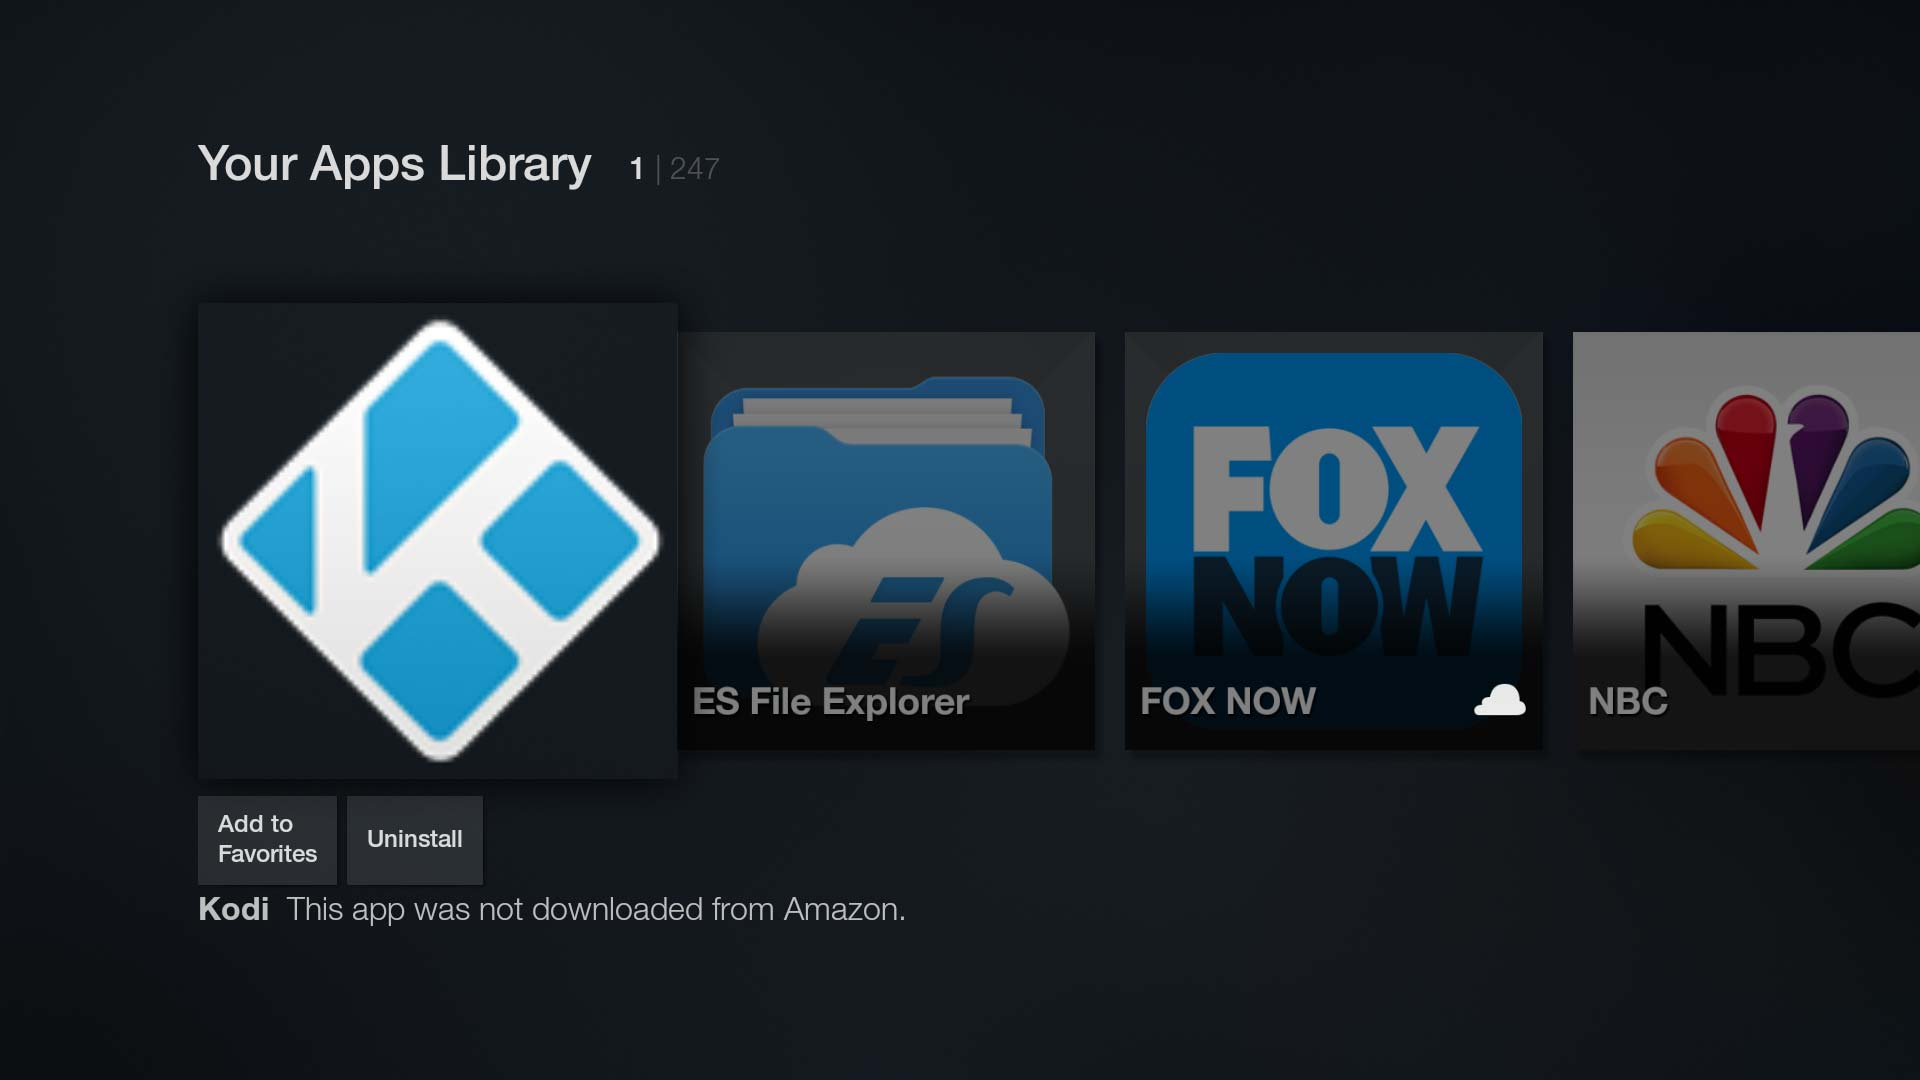 Sideloaded apps like Kodi can now be launched from the Fire